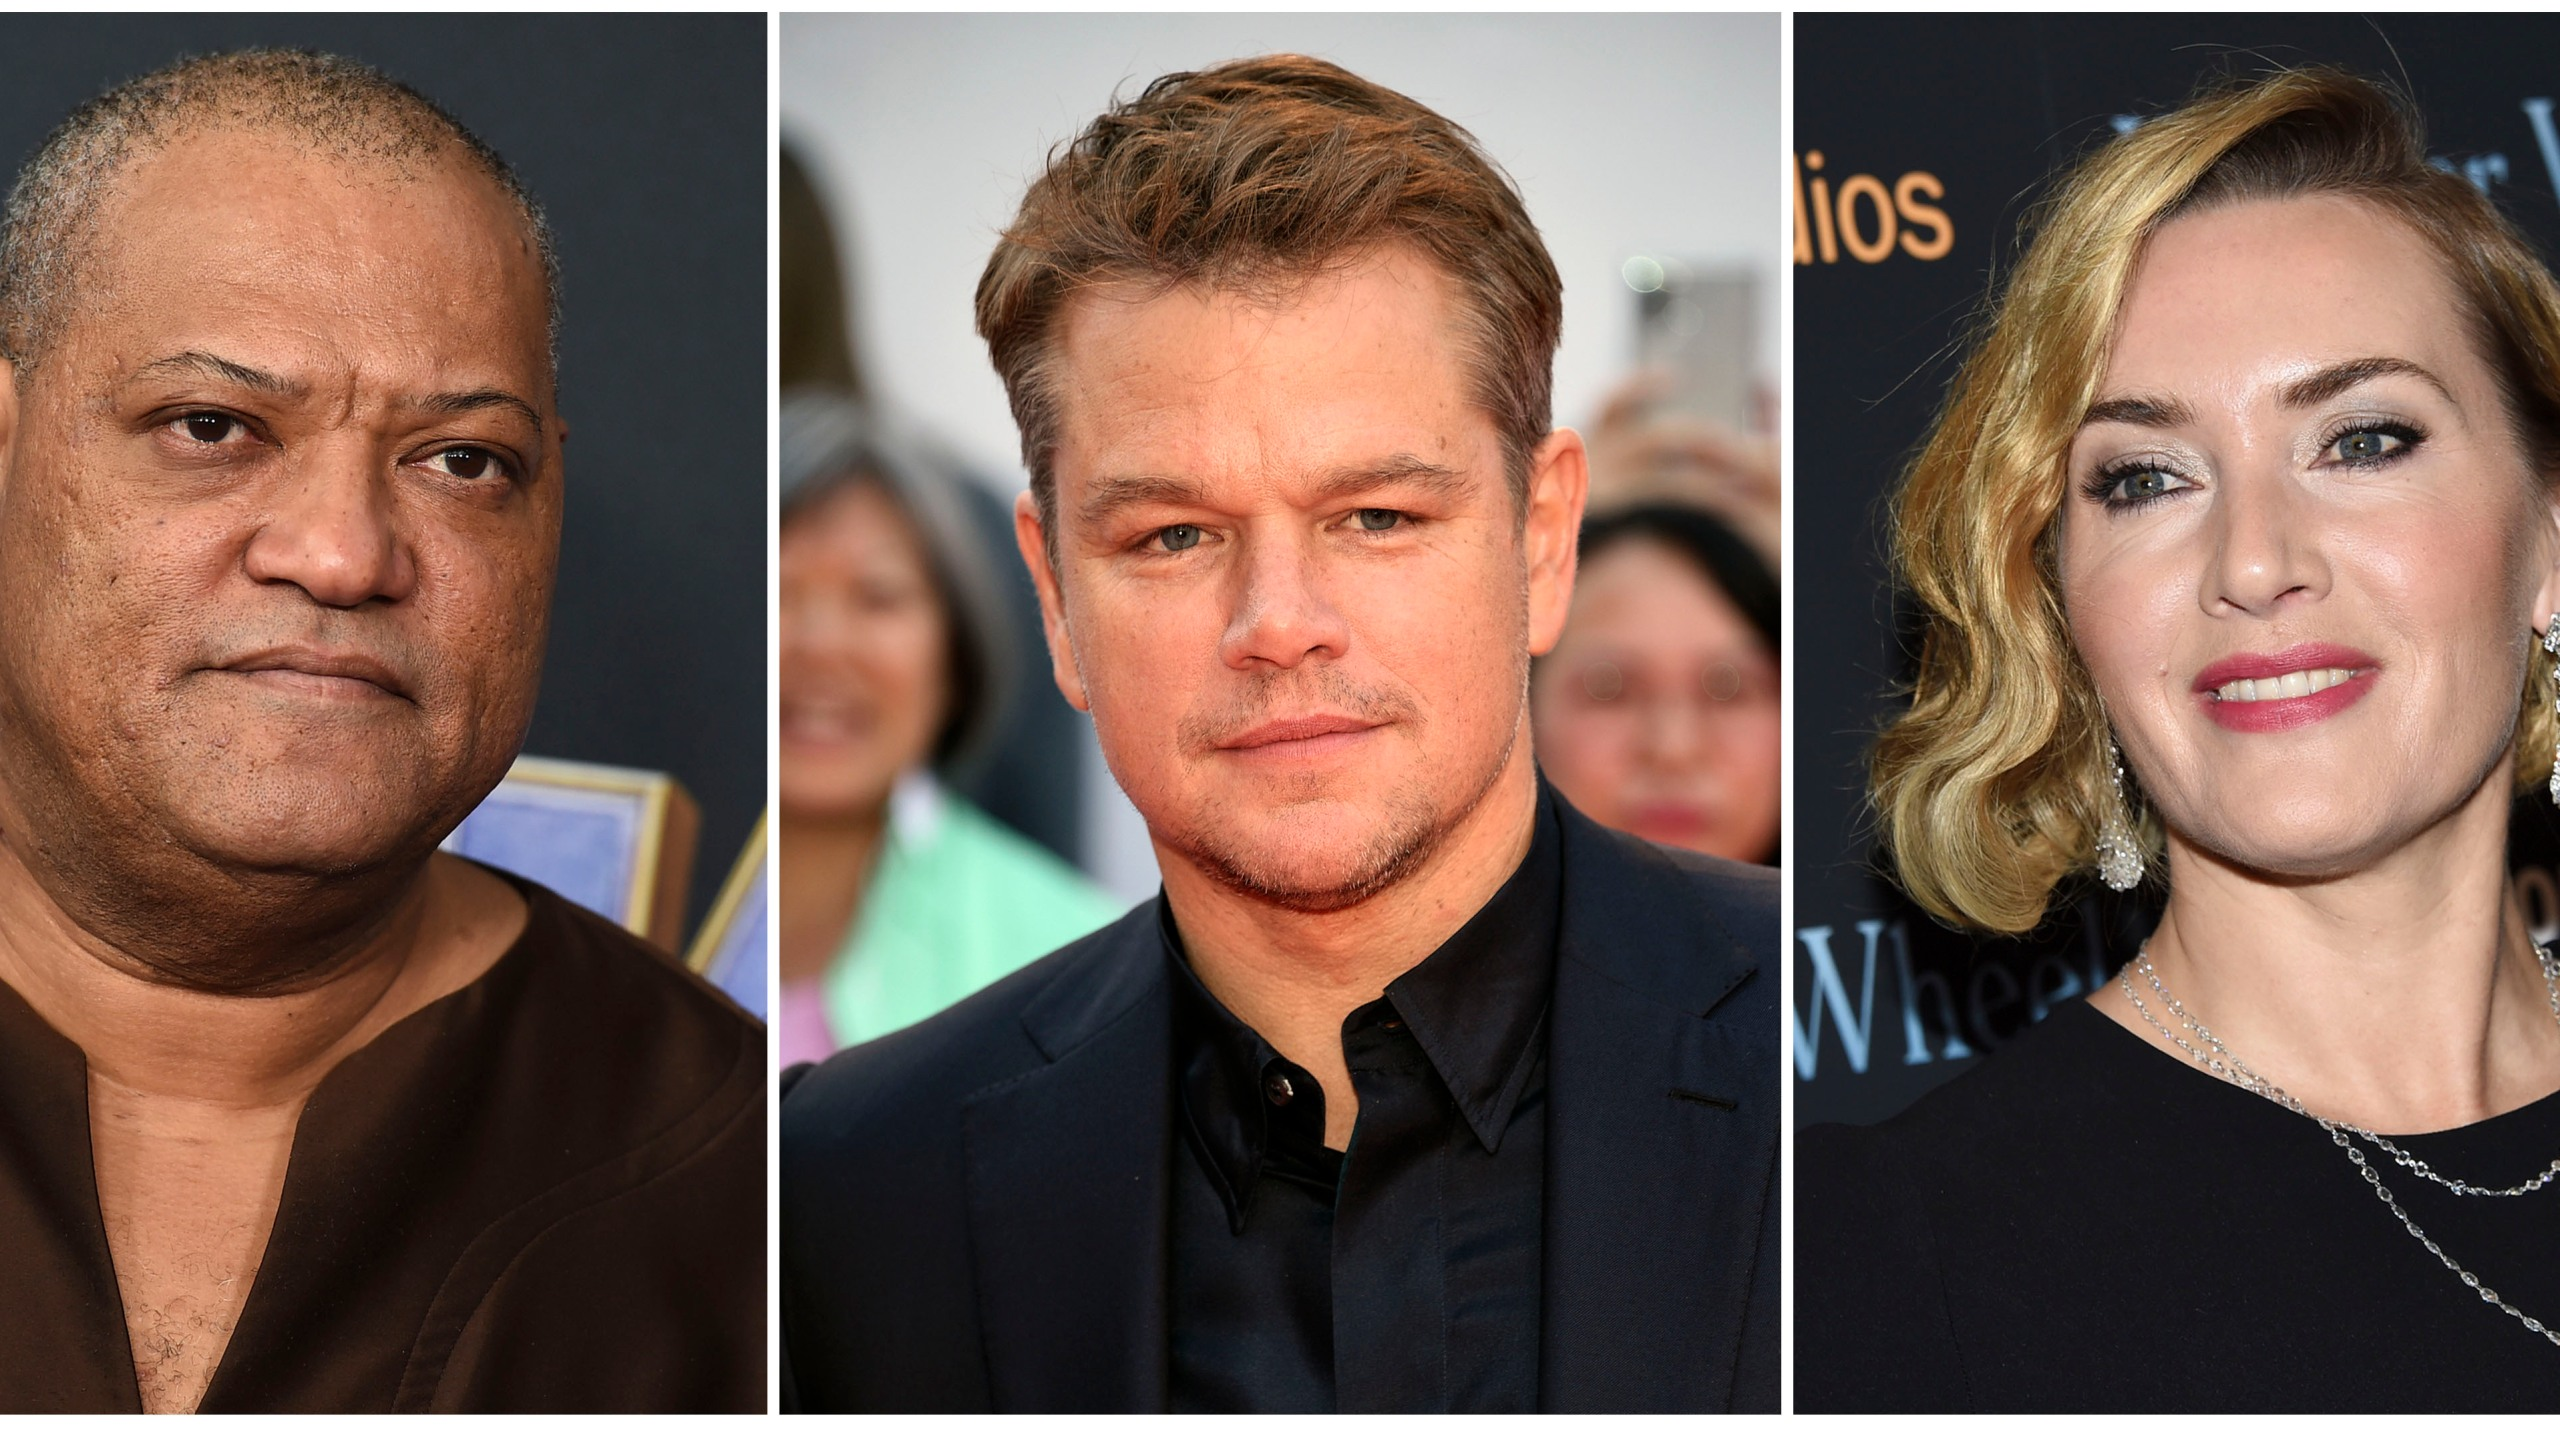 """Laurence Fishburne, Matt Damon and Kate Winslet, who are among the stars of the 2011 thriller """"Contagion"""" have reunited for a series of public service announcements to warn about COVID-19. They have teamed up with scientists from Columbia University's Mailman School of Public Health to offer four individual homemade videos. (AP Photo)"""